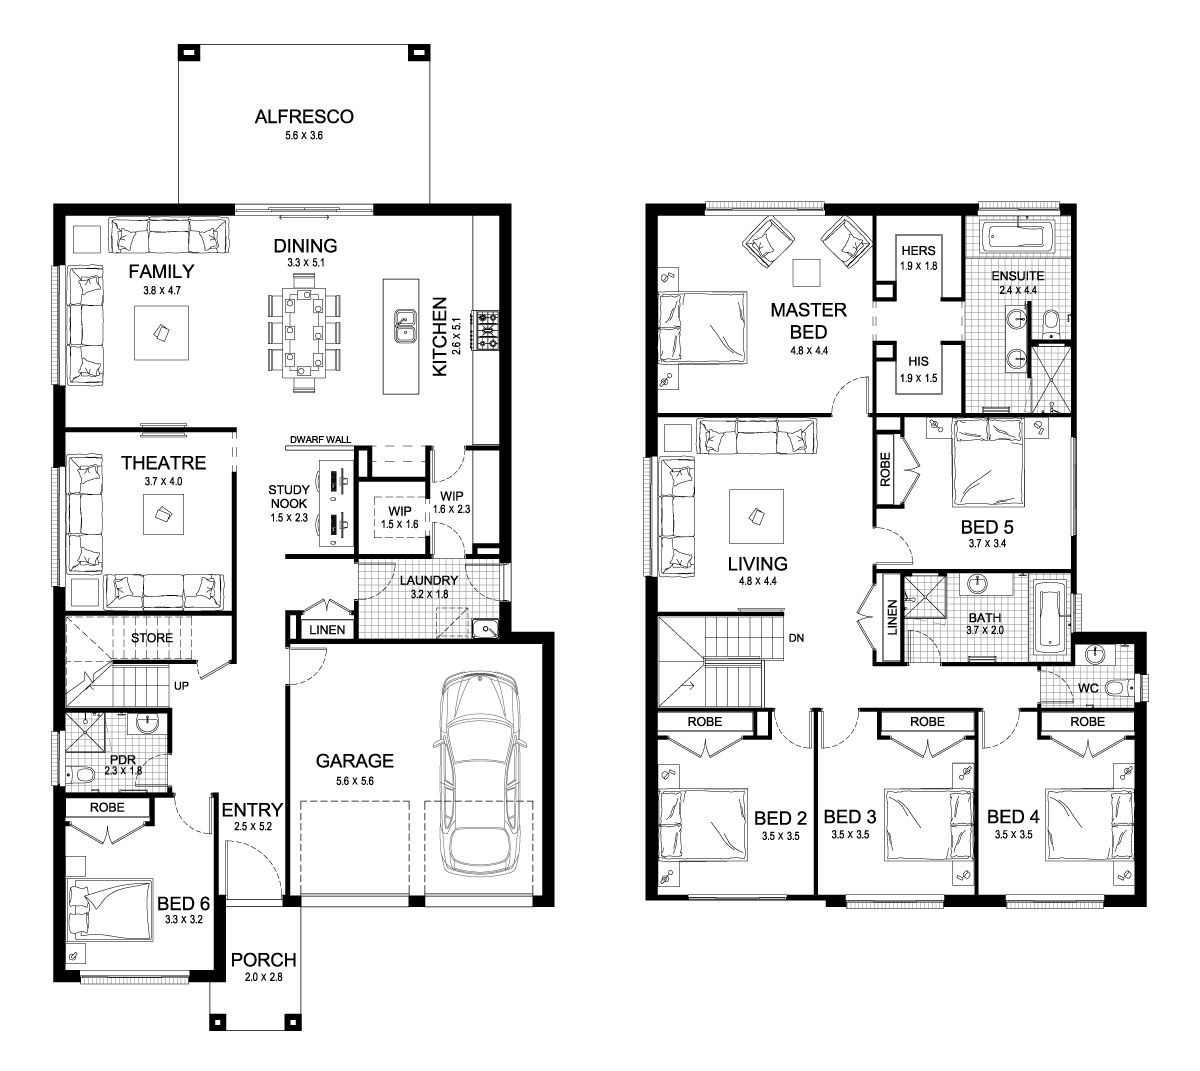 aria 38 double level floorplan by kurmond homes new home aria 38 double level floorplan by kurmond homes new home builders sydney nsw